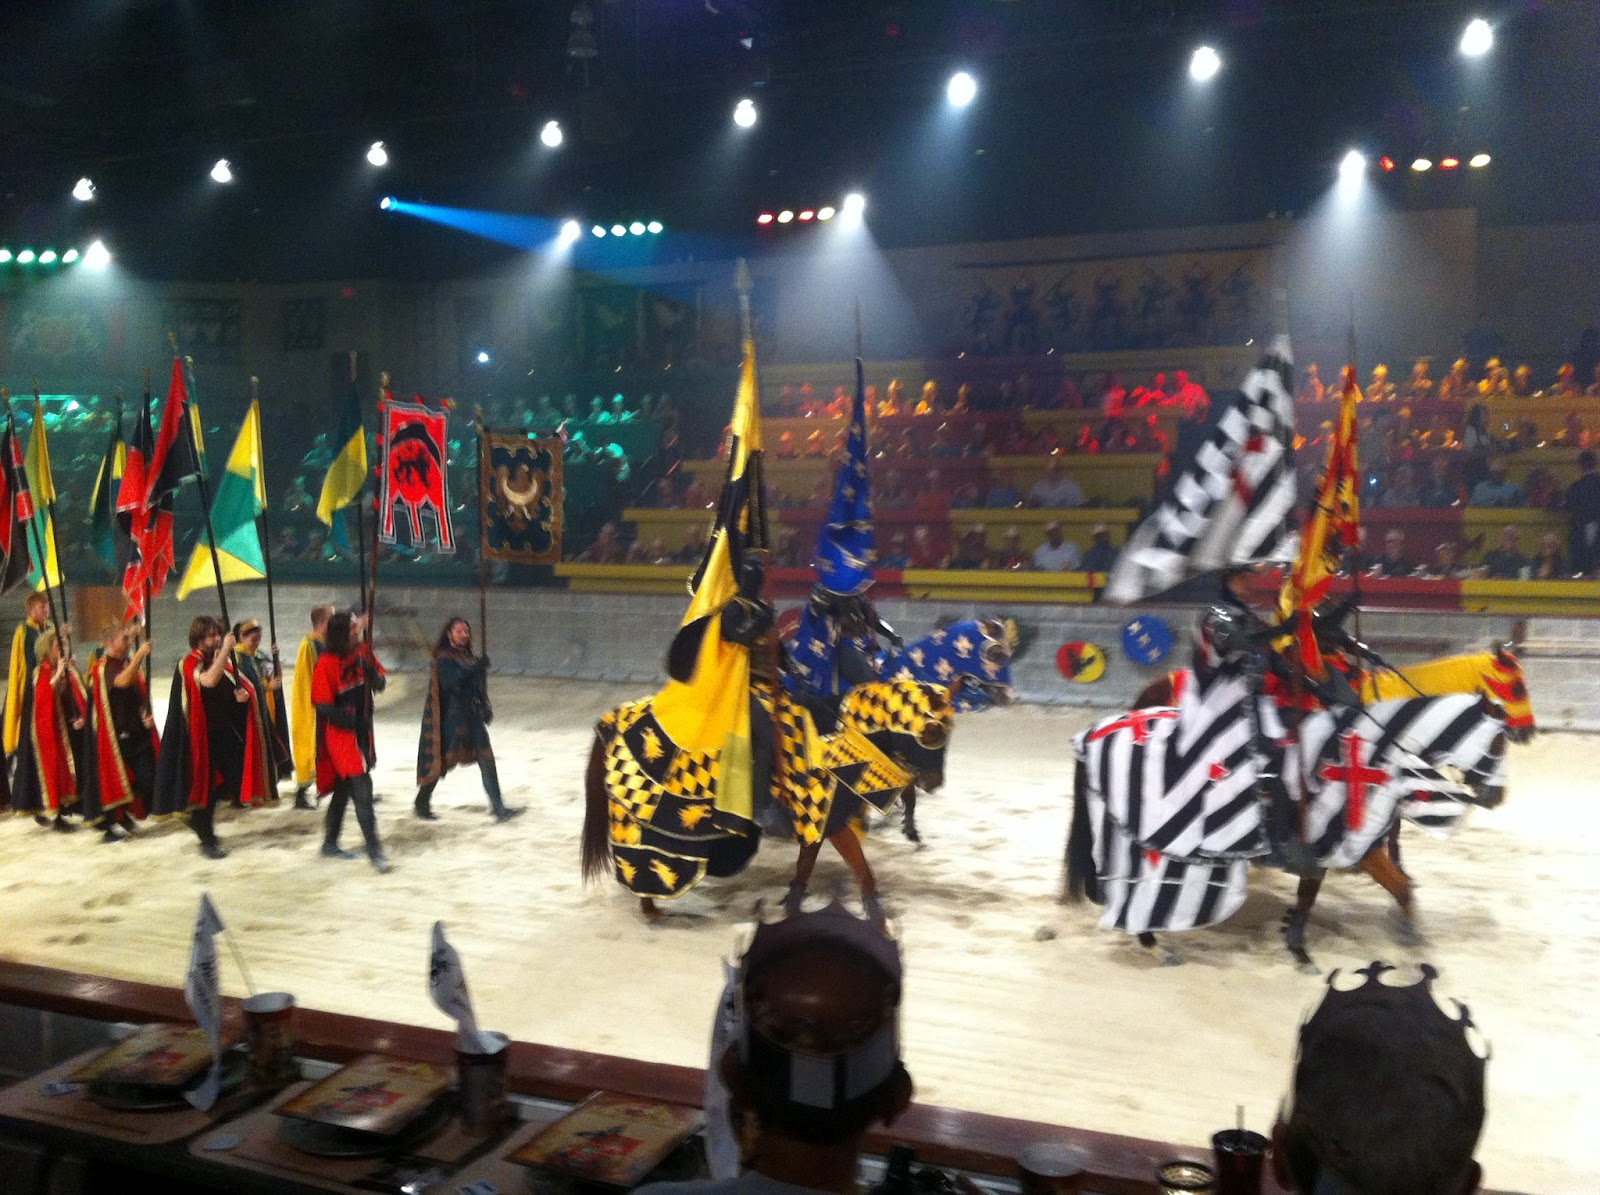 Dec 03,  · Medieval Times Maryland Castle, Hanover: Address, Phone Number, Medieval Times Maryland Castle Reviews: 4/5 Medieval Tours Dinner and Tournament in Maryland. From $* Check Availability. Had a wonderful time recently while attending Medieval Times in Baltimore. The new show is empowering and the food was delicious.4/4().